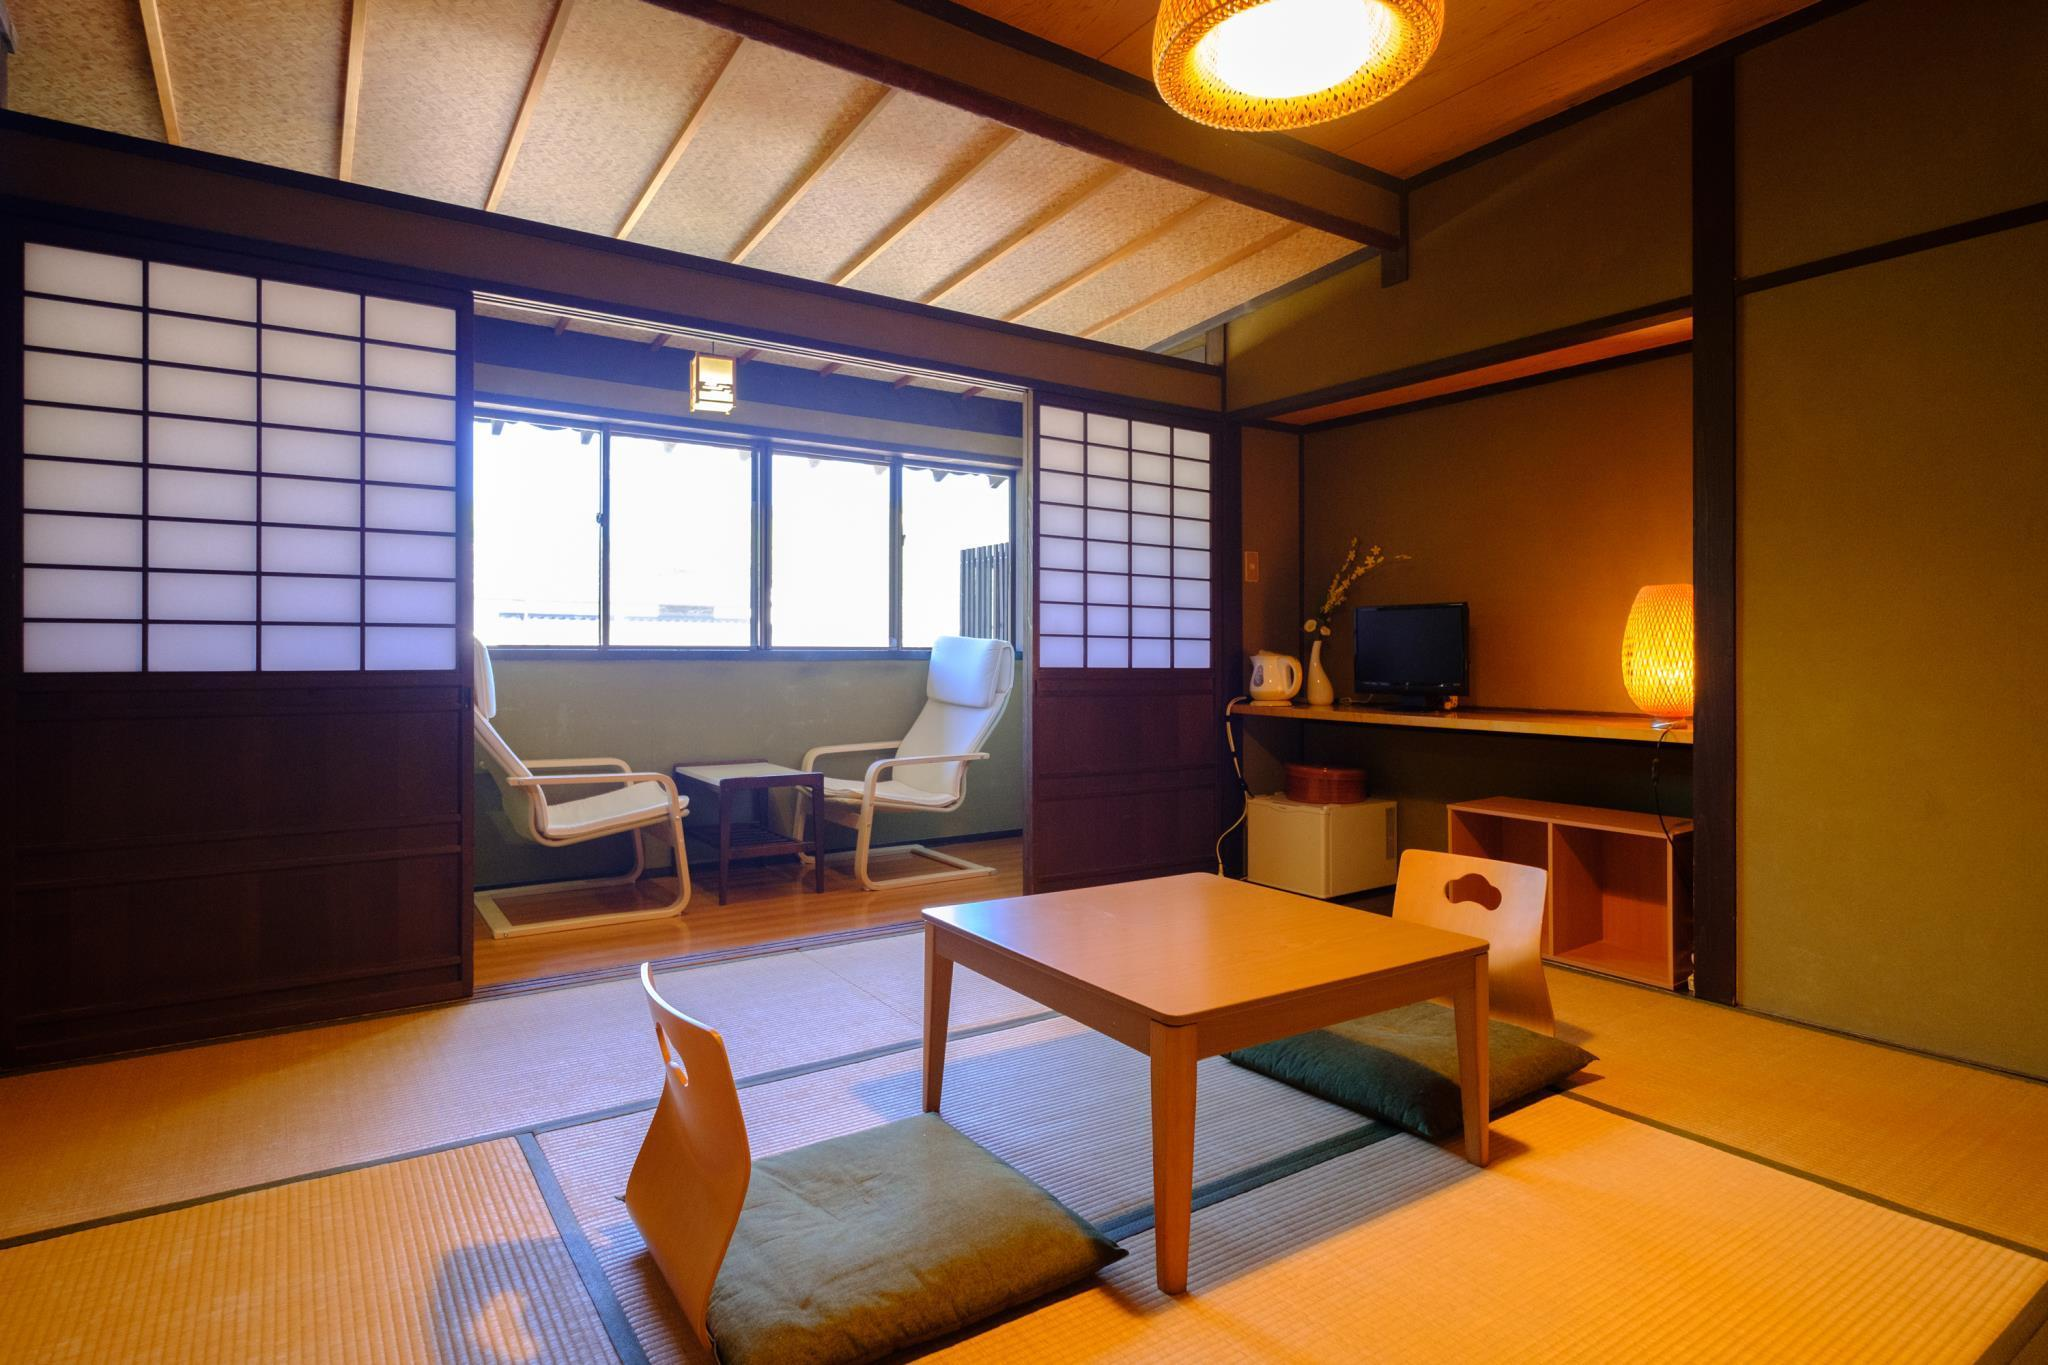 日式房(8张榻榻米)-带独立卫生间 (Japanese Style Room with 8 Tatami and Private Toilet)